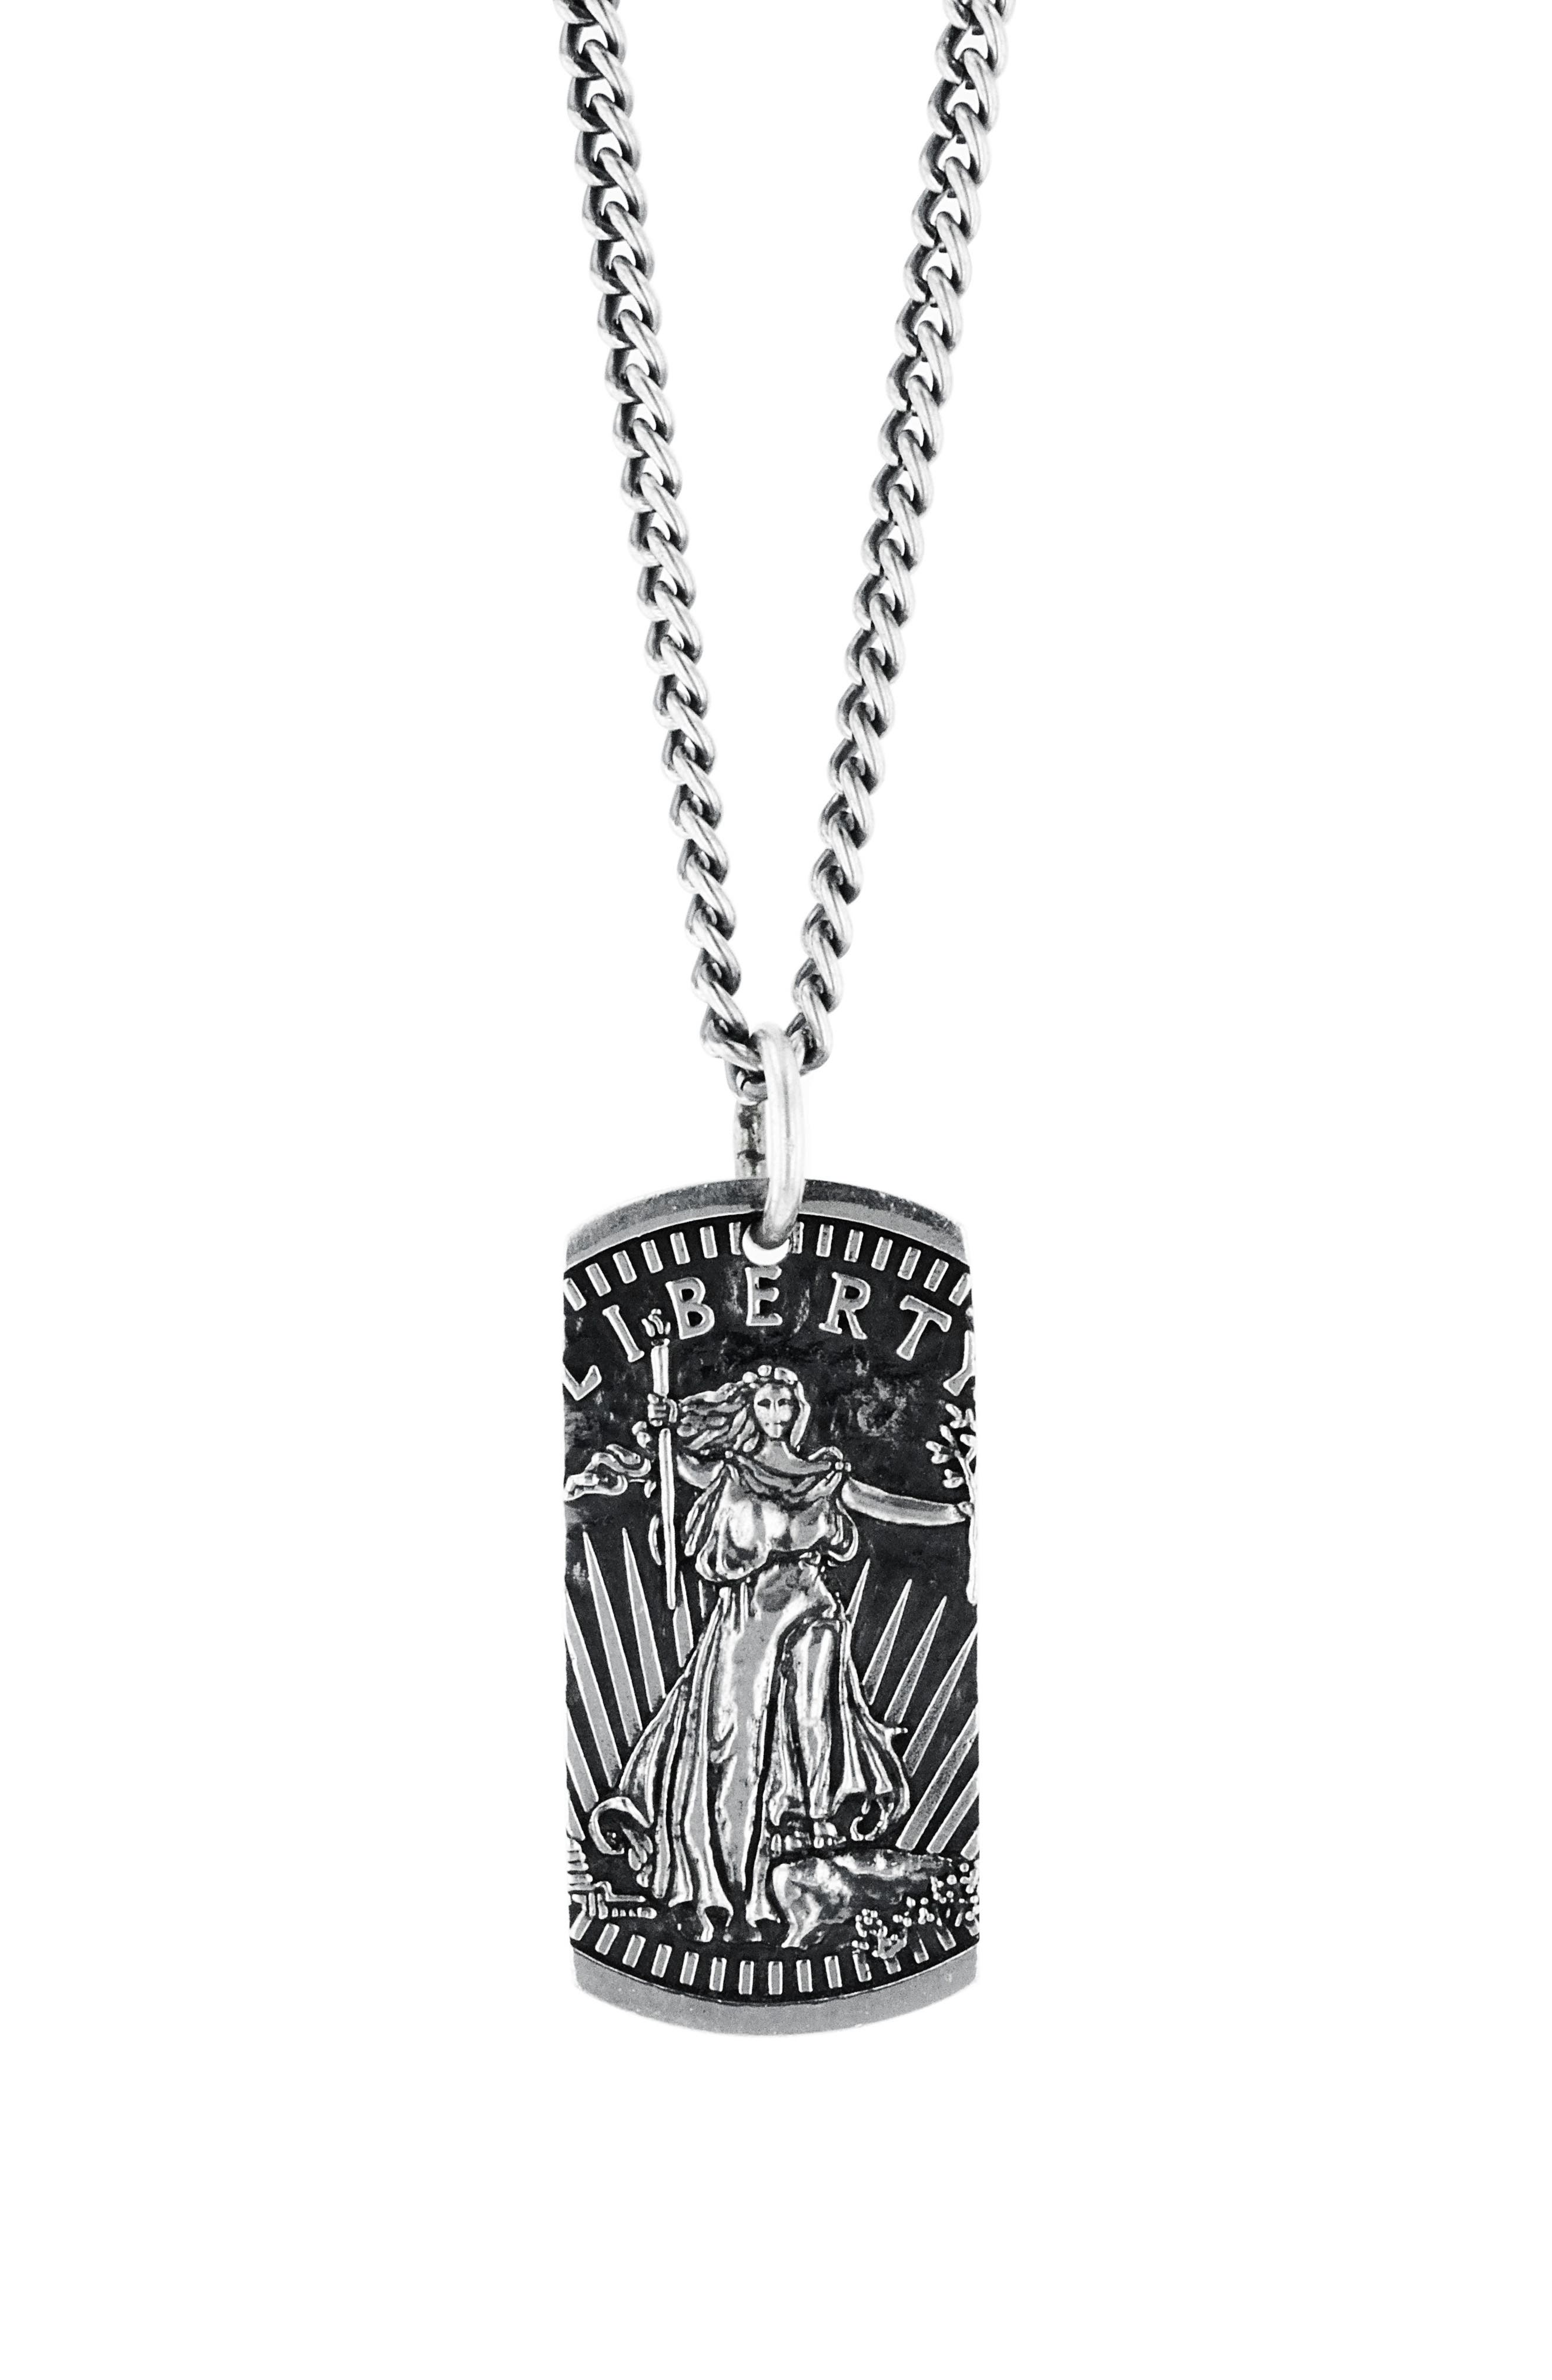 King Baby American Voices Liberty Dog Tag Necklace